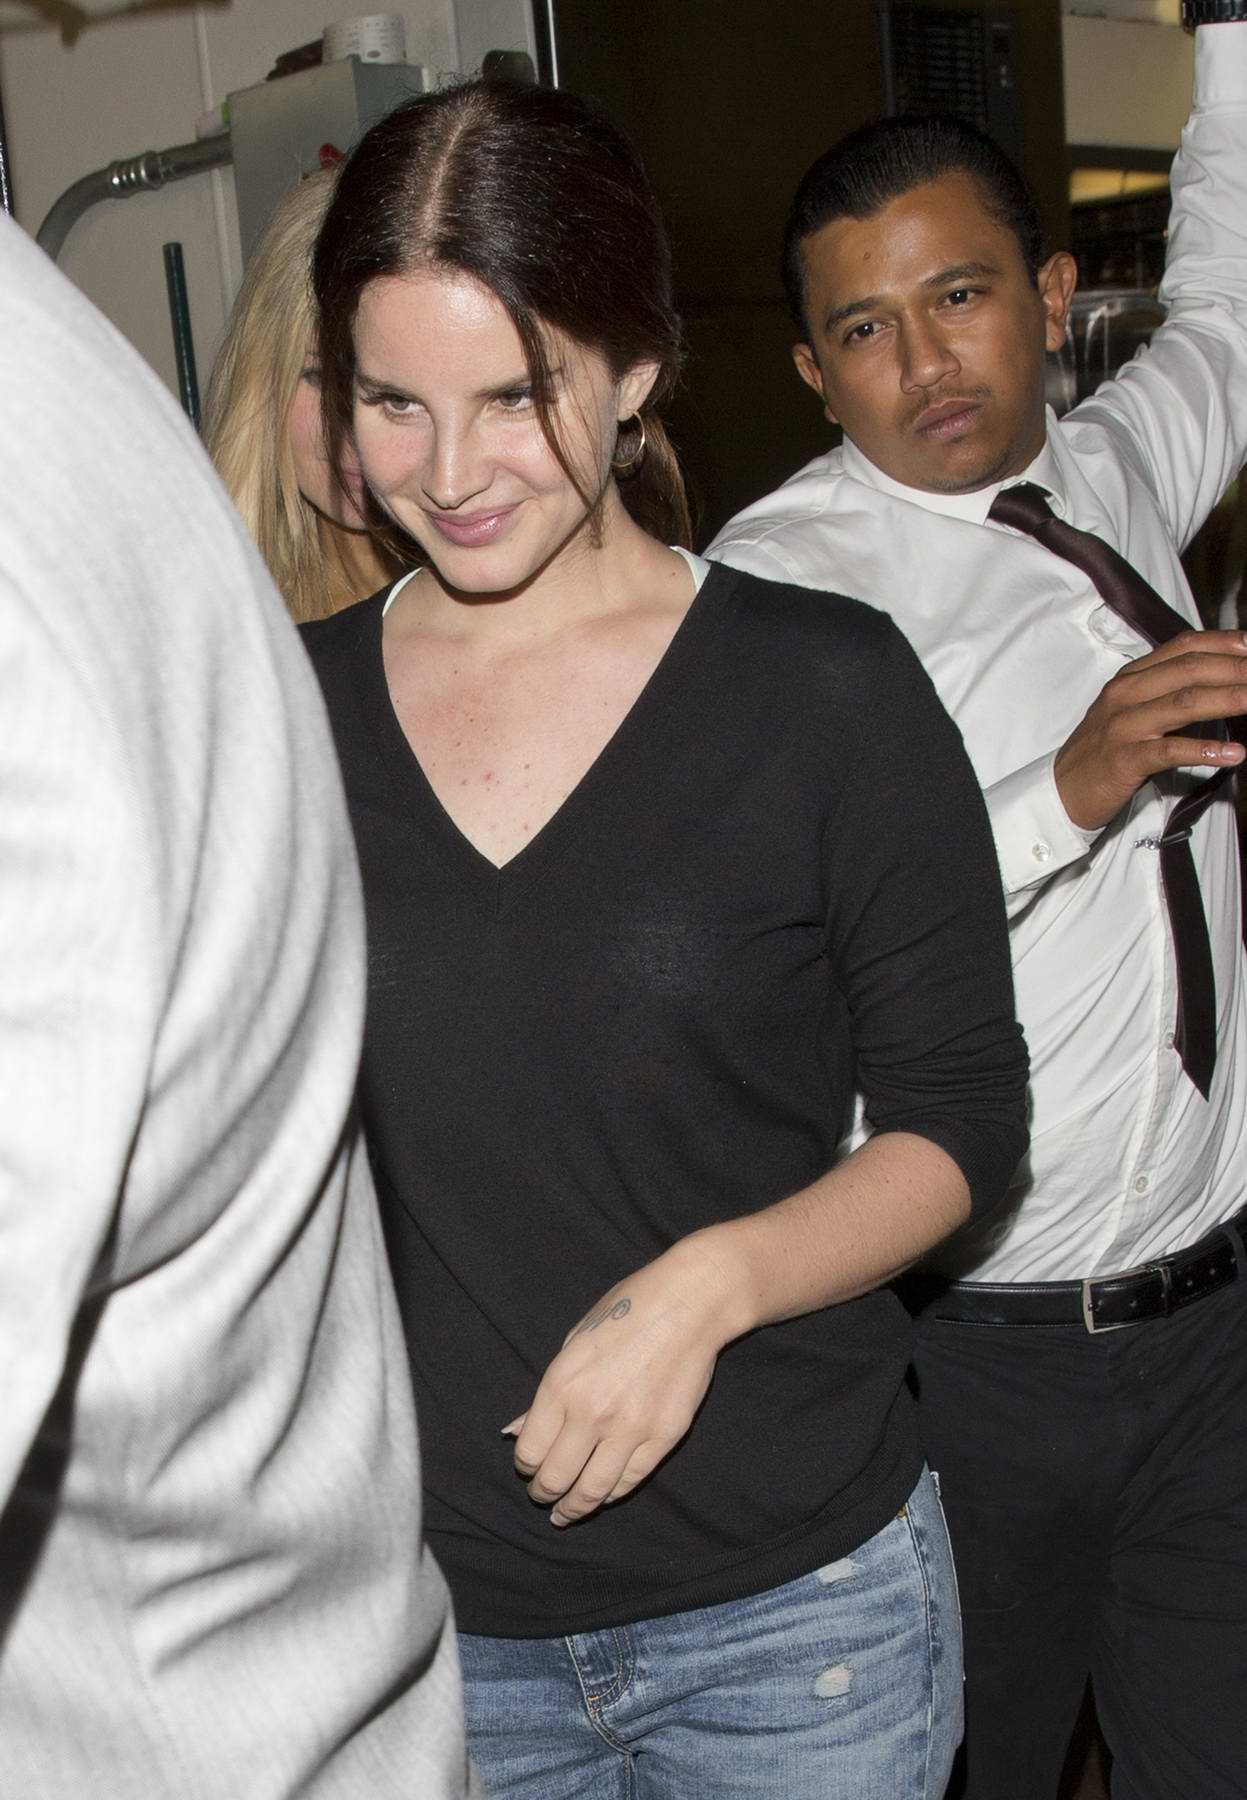 Lana Del Rey leaving the Nice Guy in West Hollywood